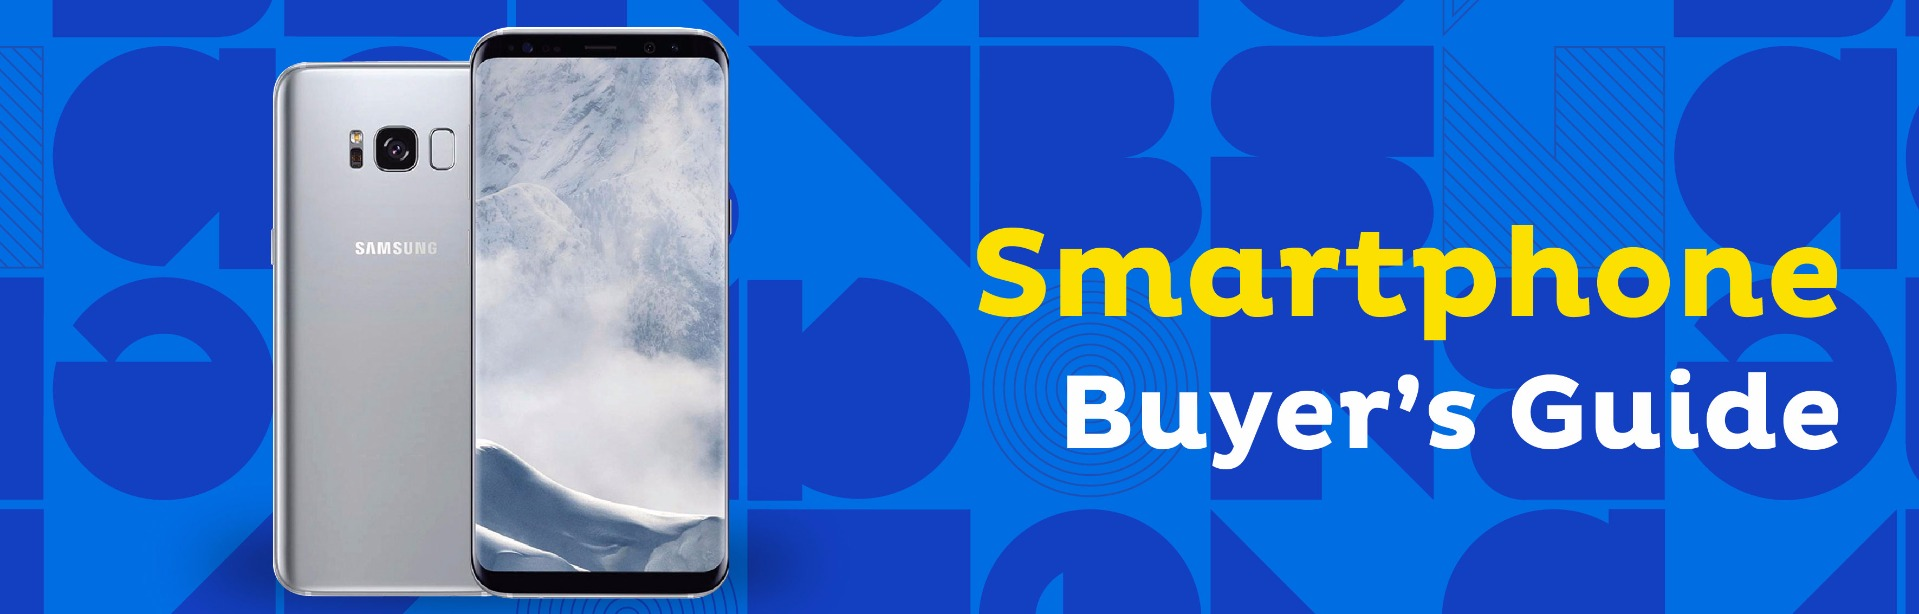 mobile buyers guide